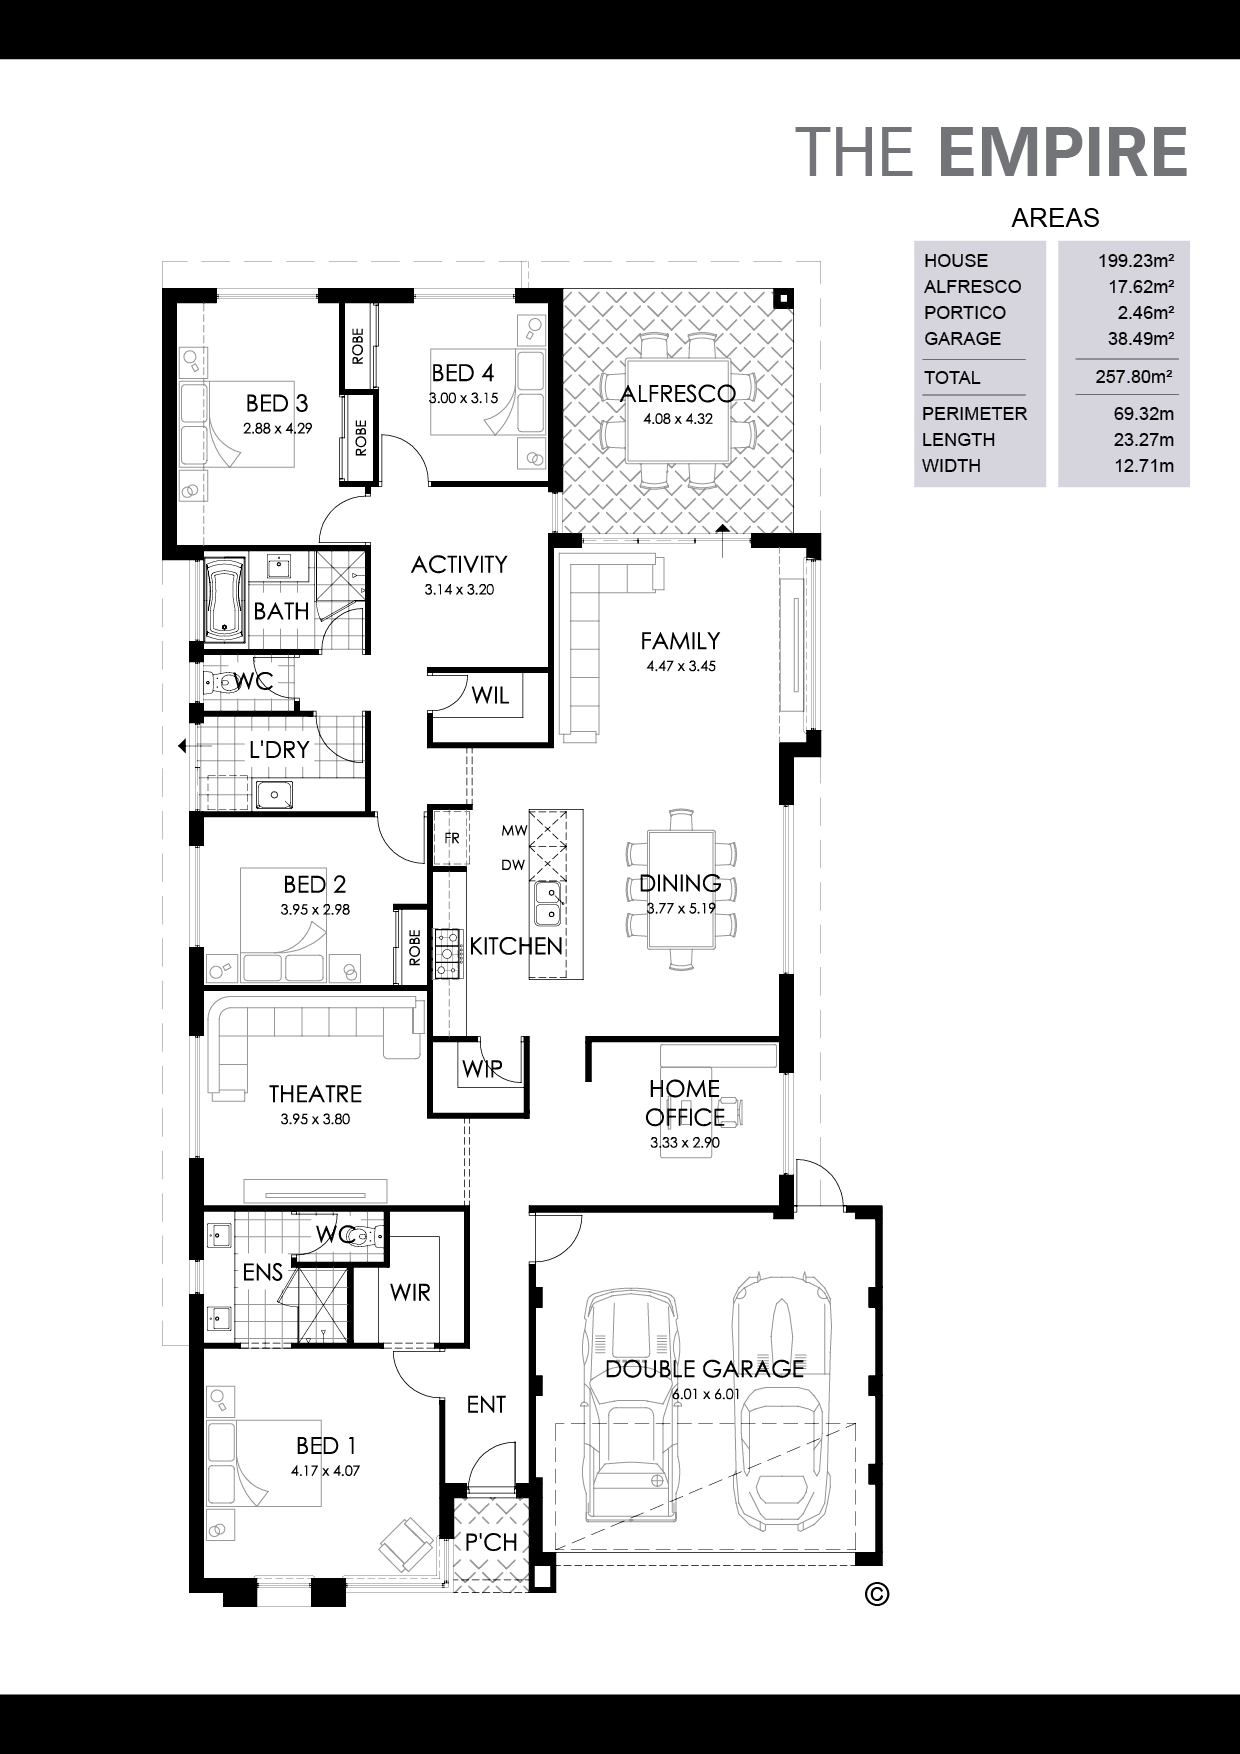 The Empire Floorplan